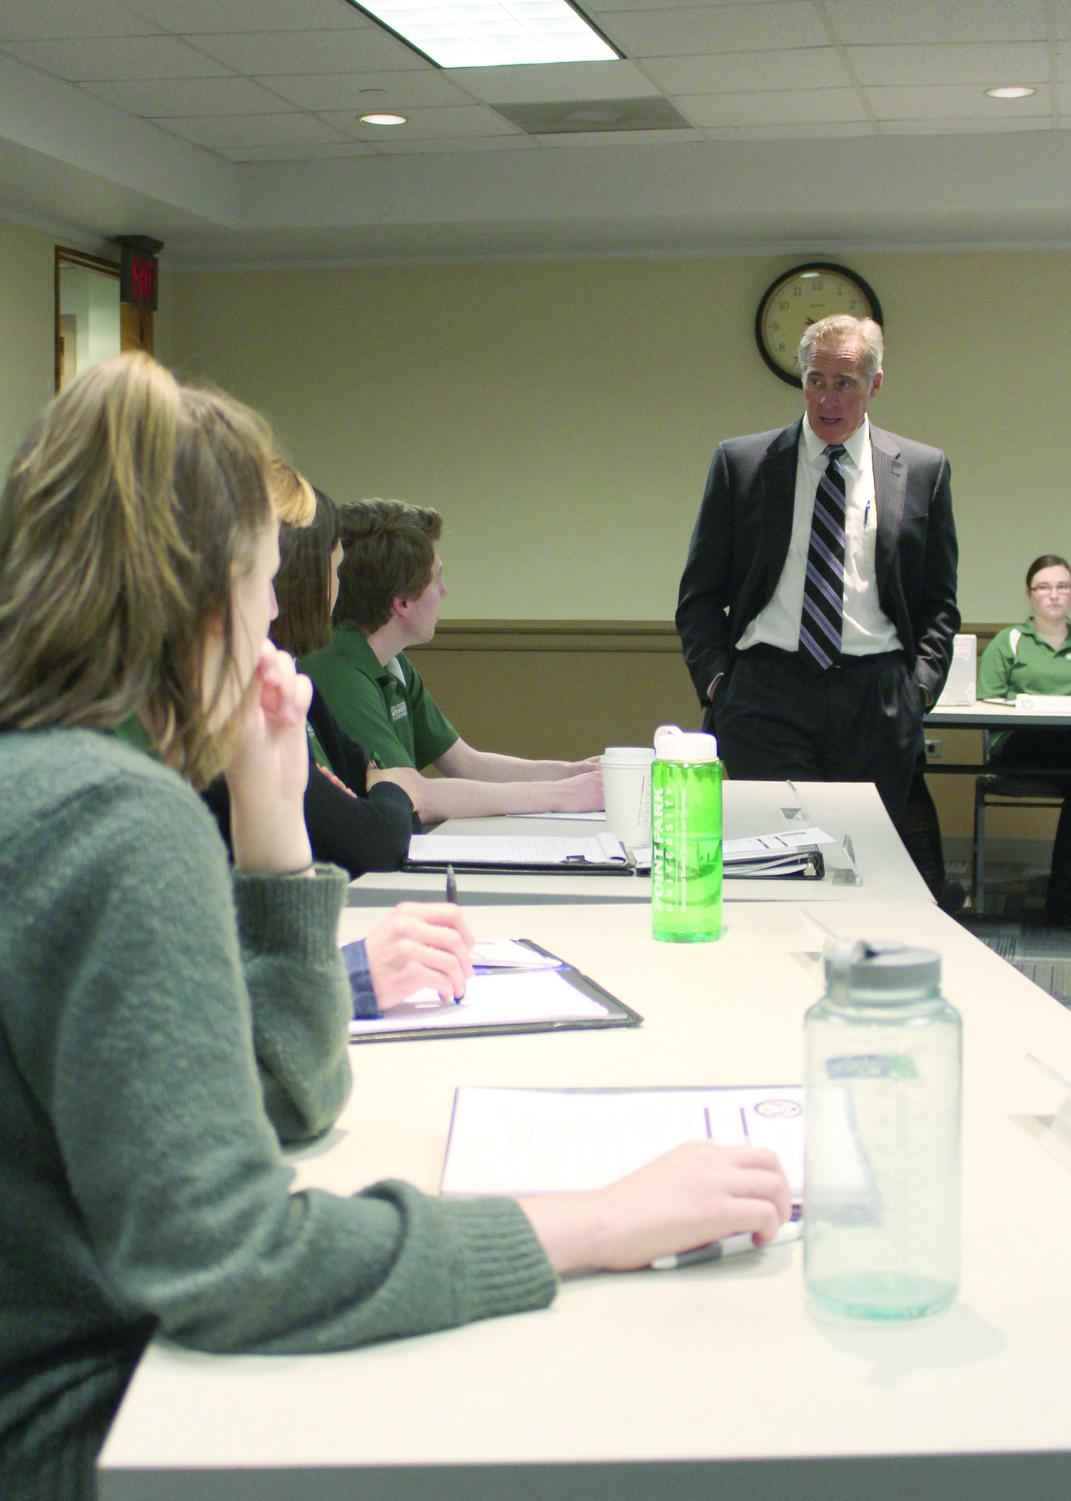 President Hennigan addressed USG and student concerns regarding tuition and housing at their meeting on Monday.